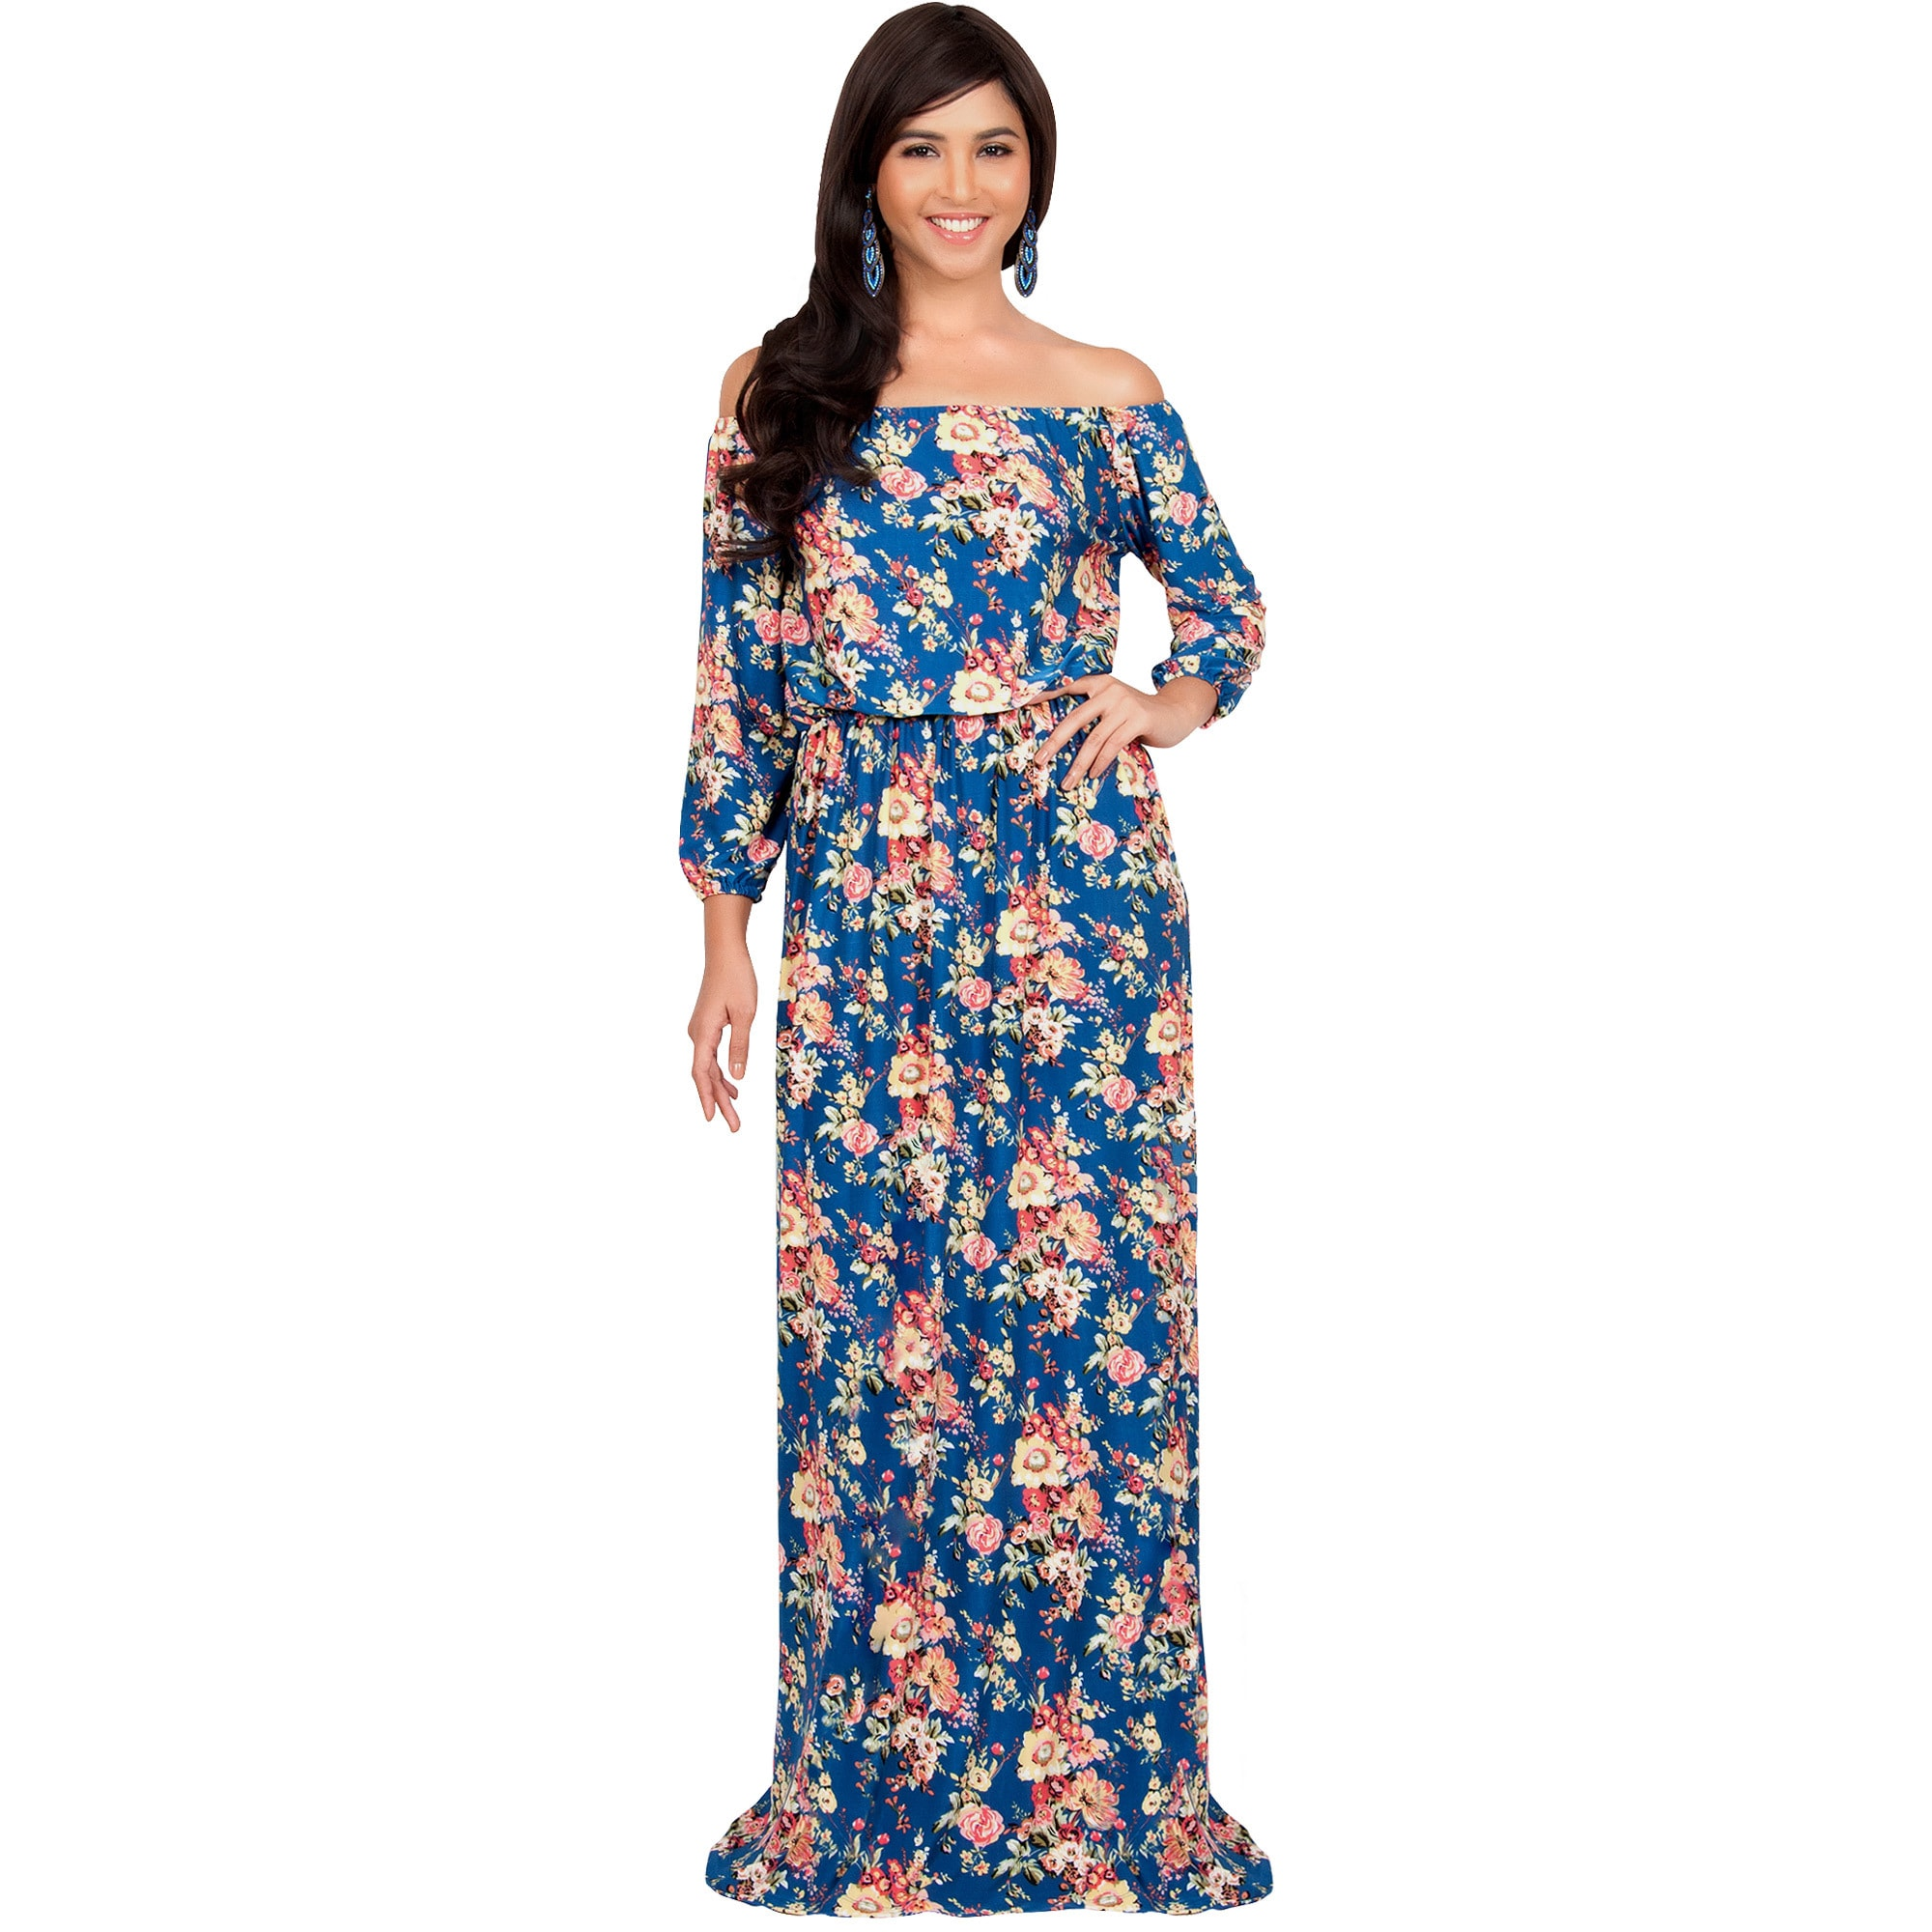 a763fc86ffc7 Shop Koh Koh Women s Off-shoulder Sexy Summer Floral-print Maxi ...